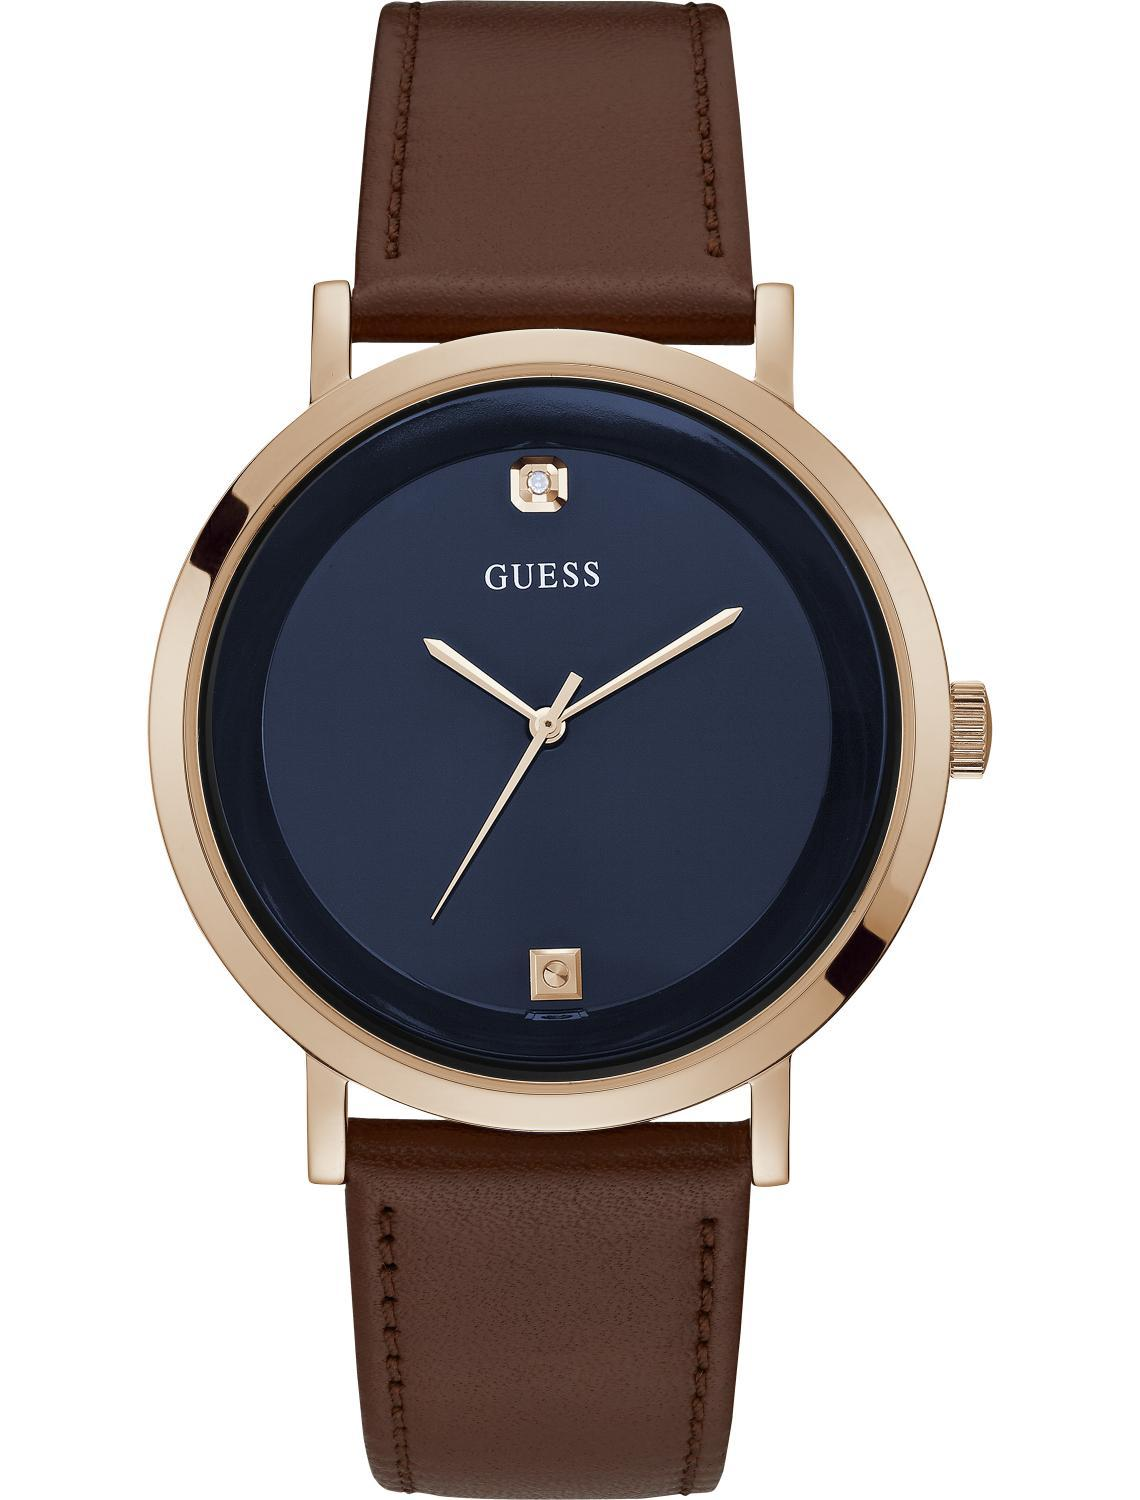 Watches GUESS GENTS GW0009G2 - Laikrodžiai